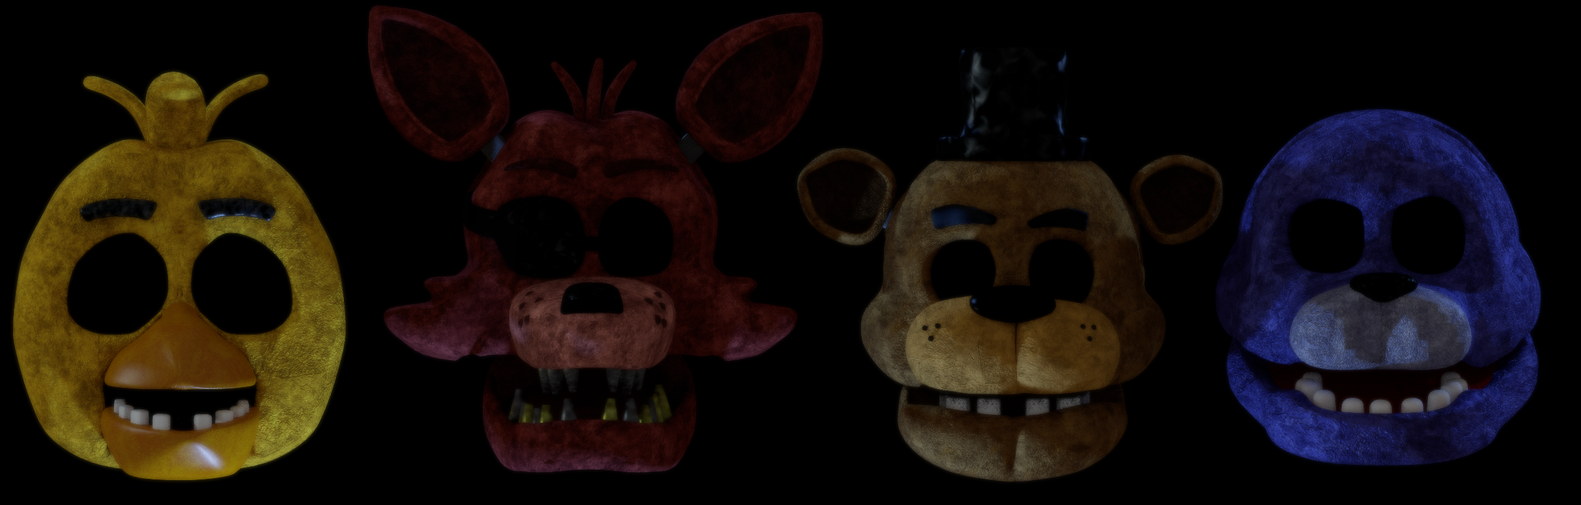 FNaF 1 Animatronic Heads by Michael-V